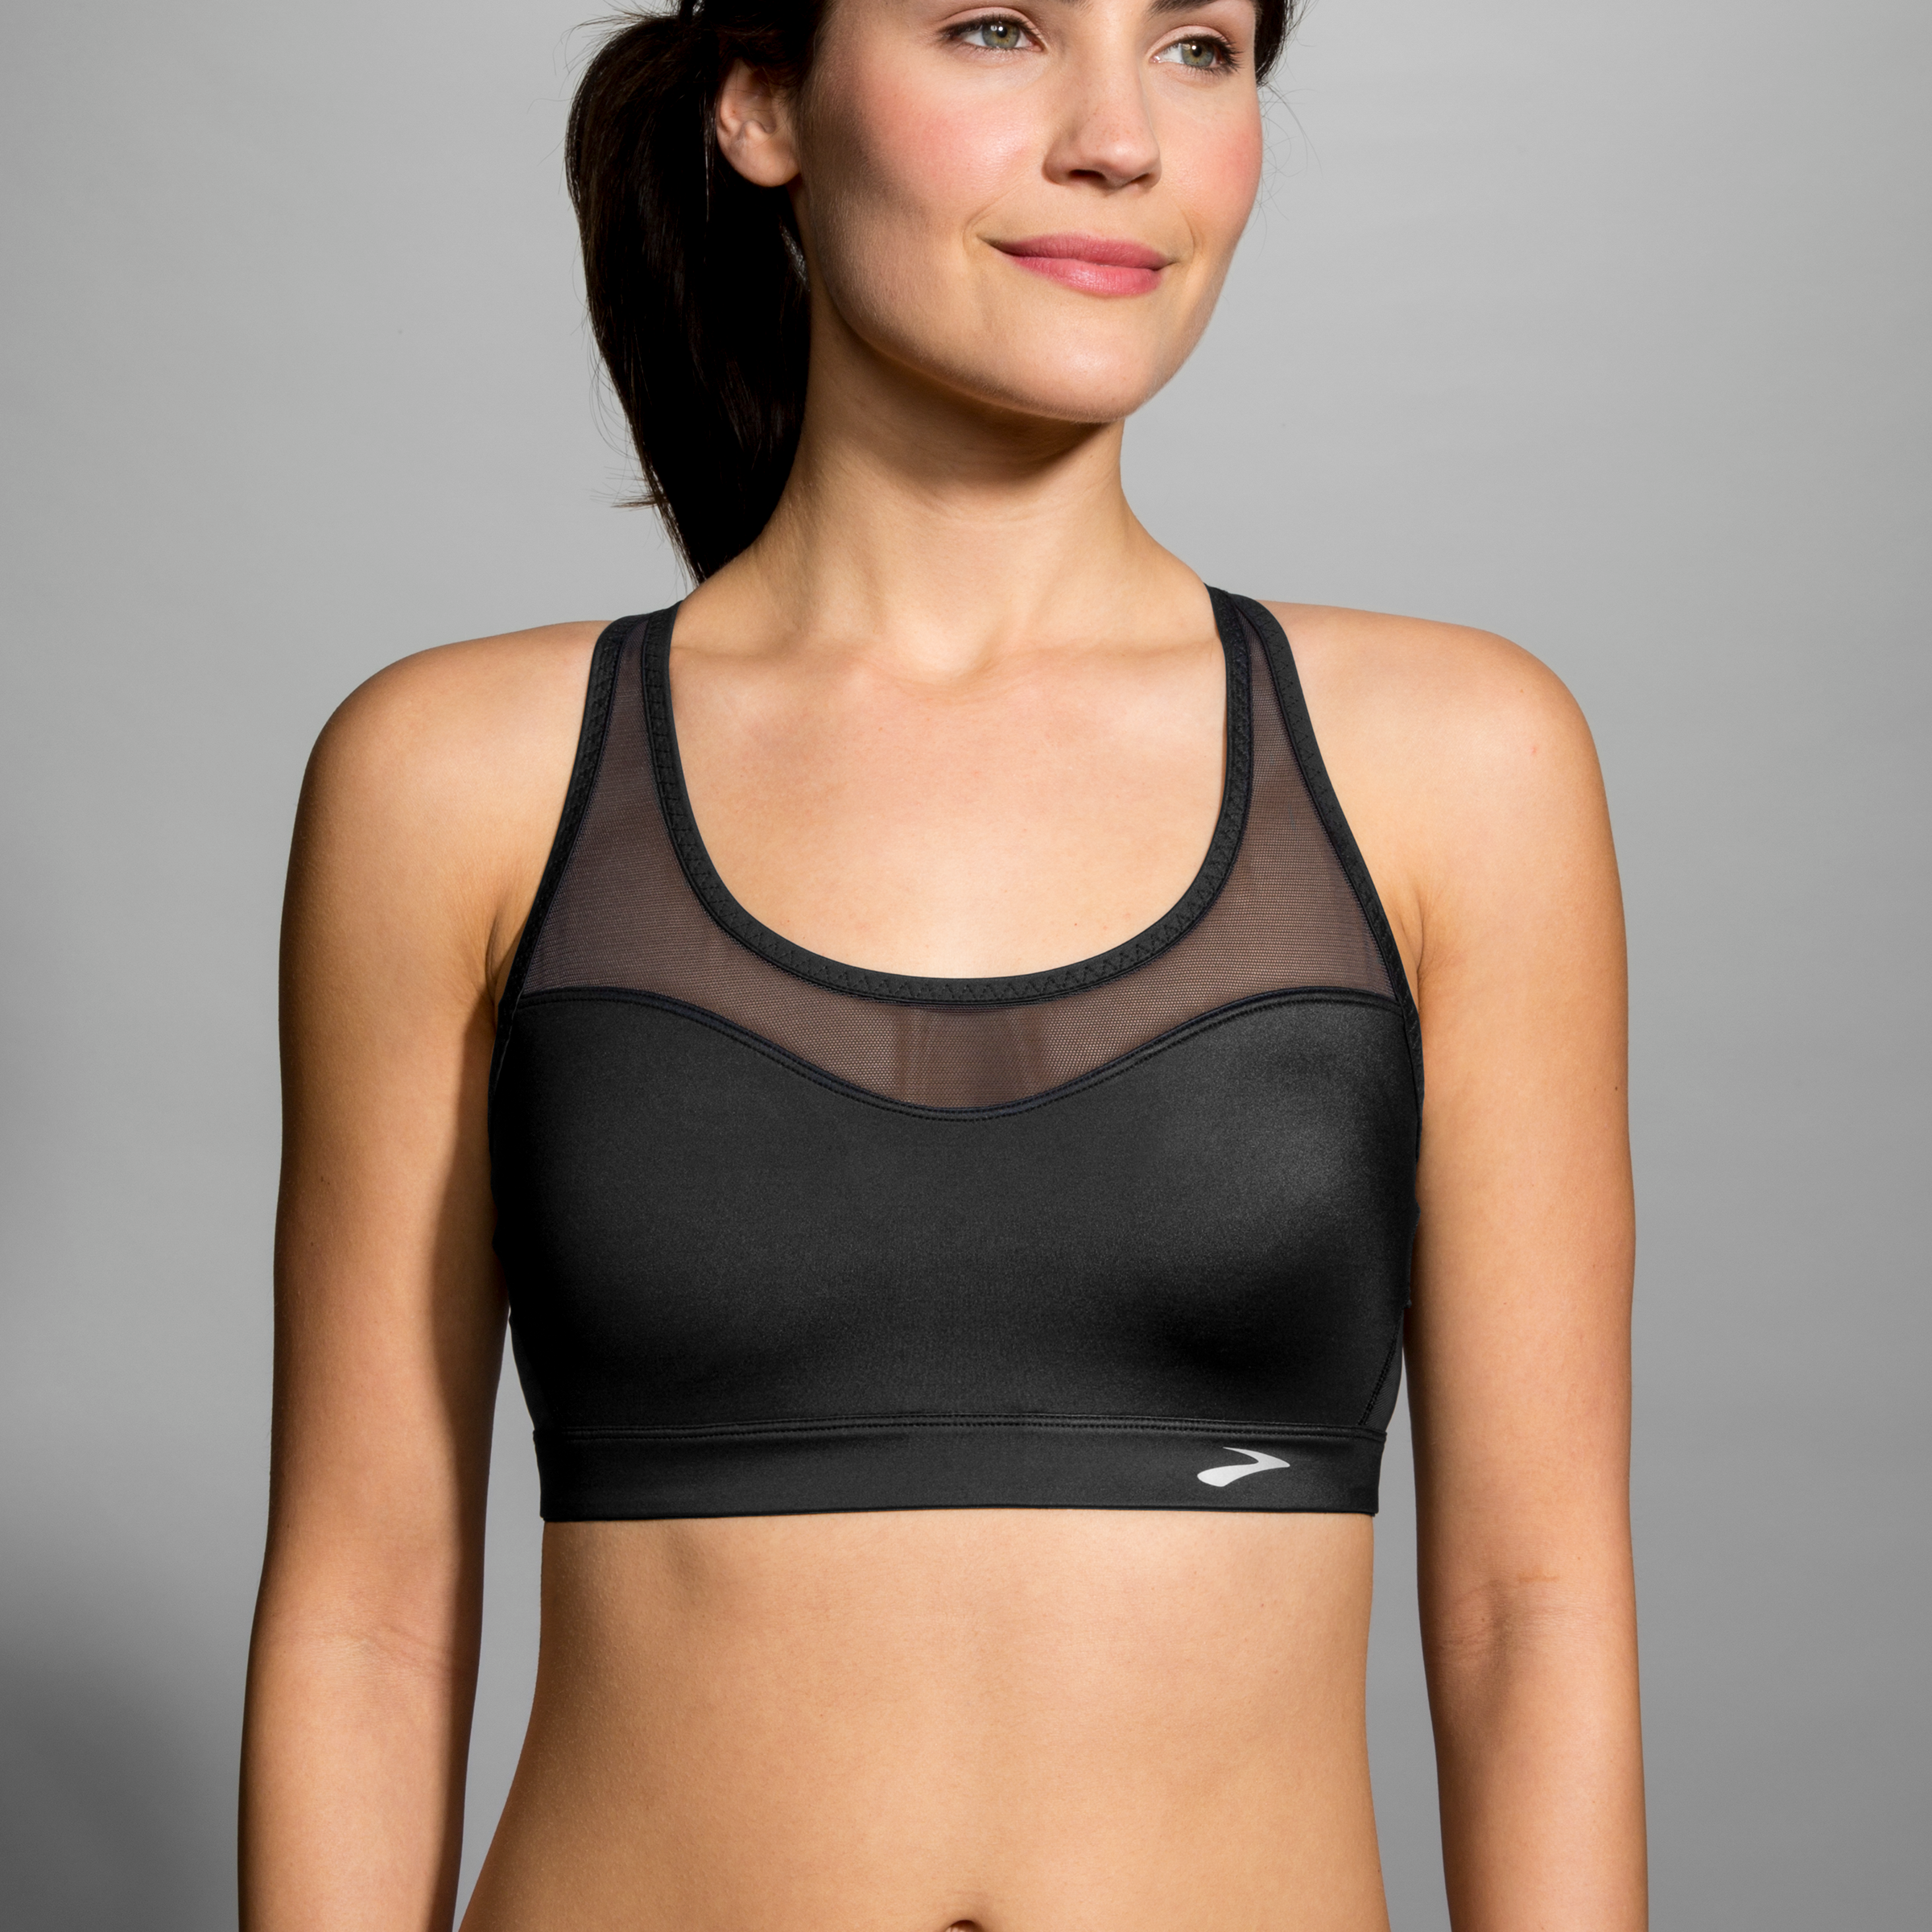 33a9d39dbf3e9 The FastForward Crossback is Brooks  answer to a great bra plus a great  pricepoint. This medium impact bra is stylish and offers full adjustability  - for ...